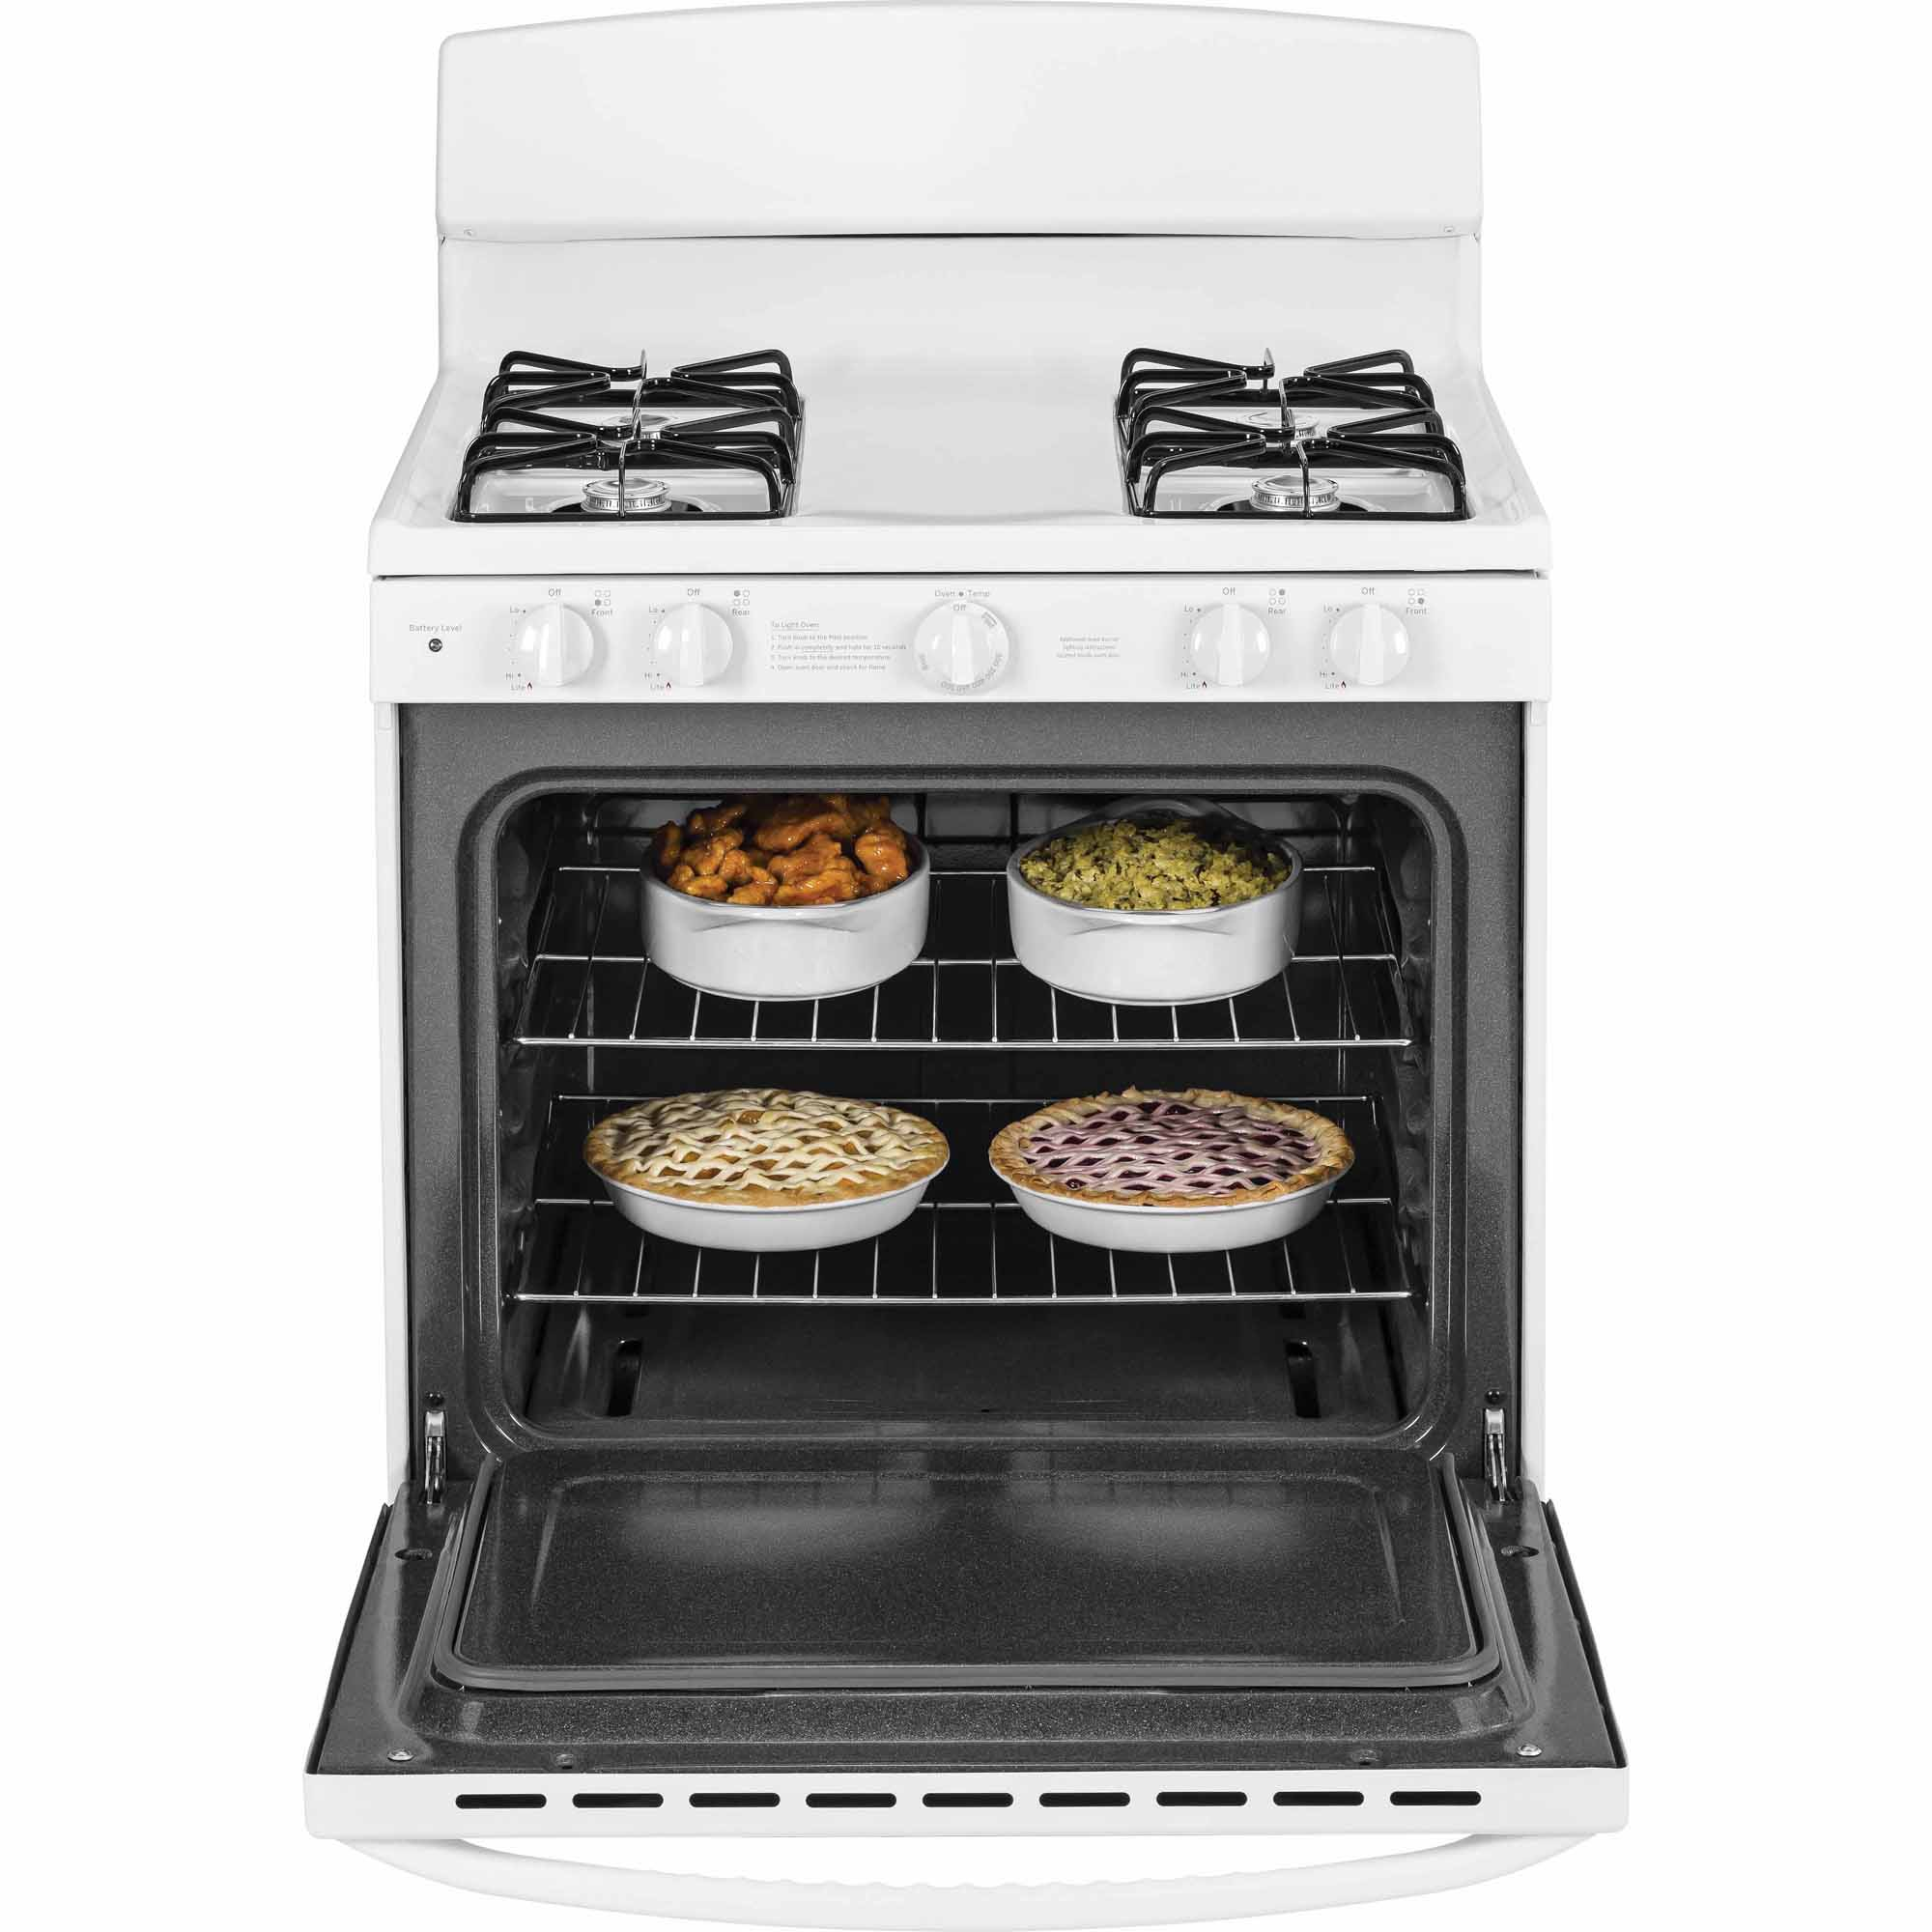 GE 4.8 cu. ft. Gas Range w/ Cordless Battery Ignition - White